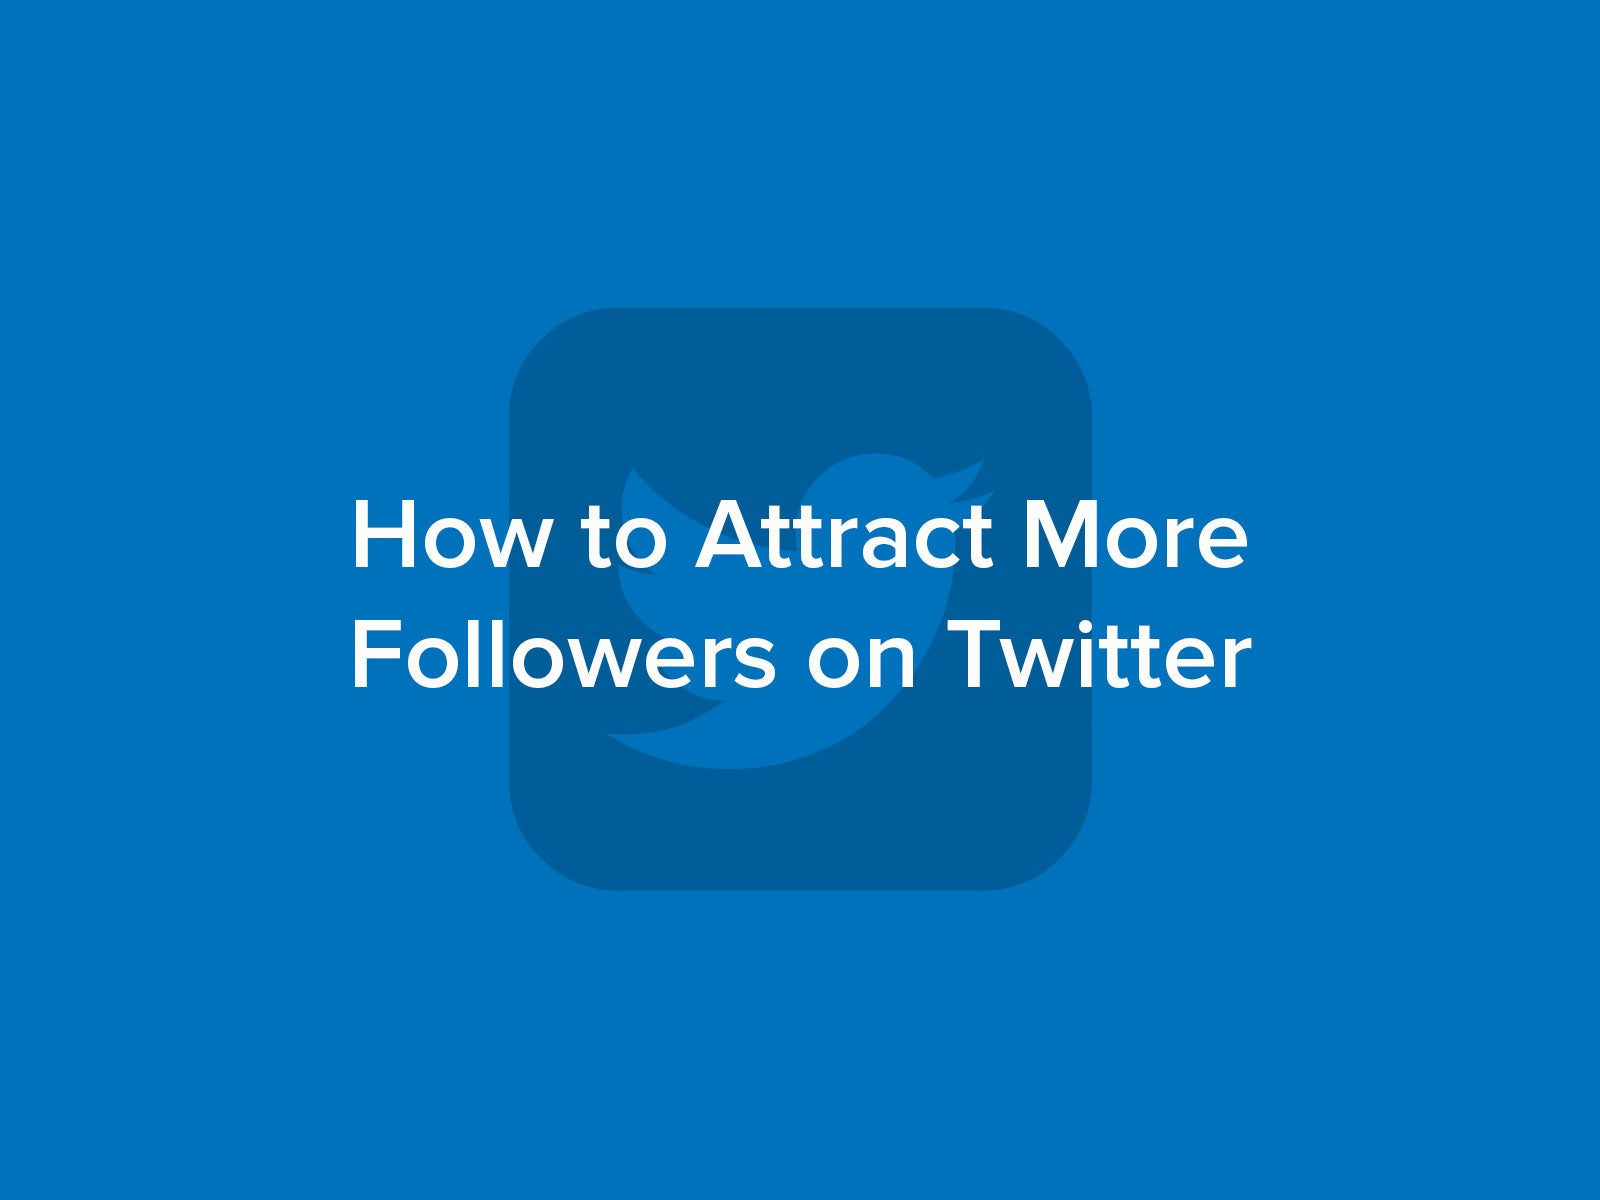 How to Attract More Followers on Twitter